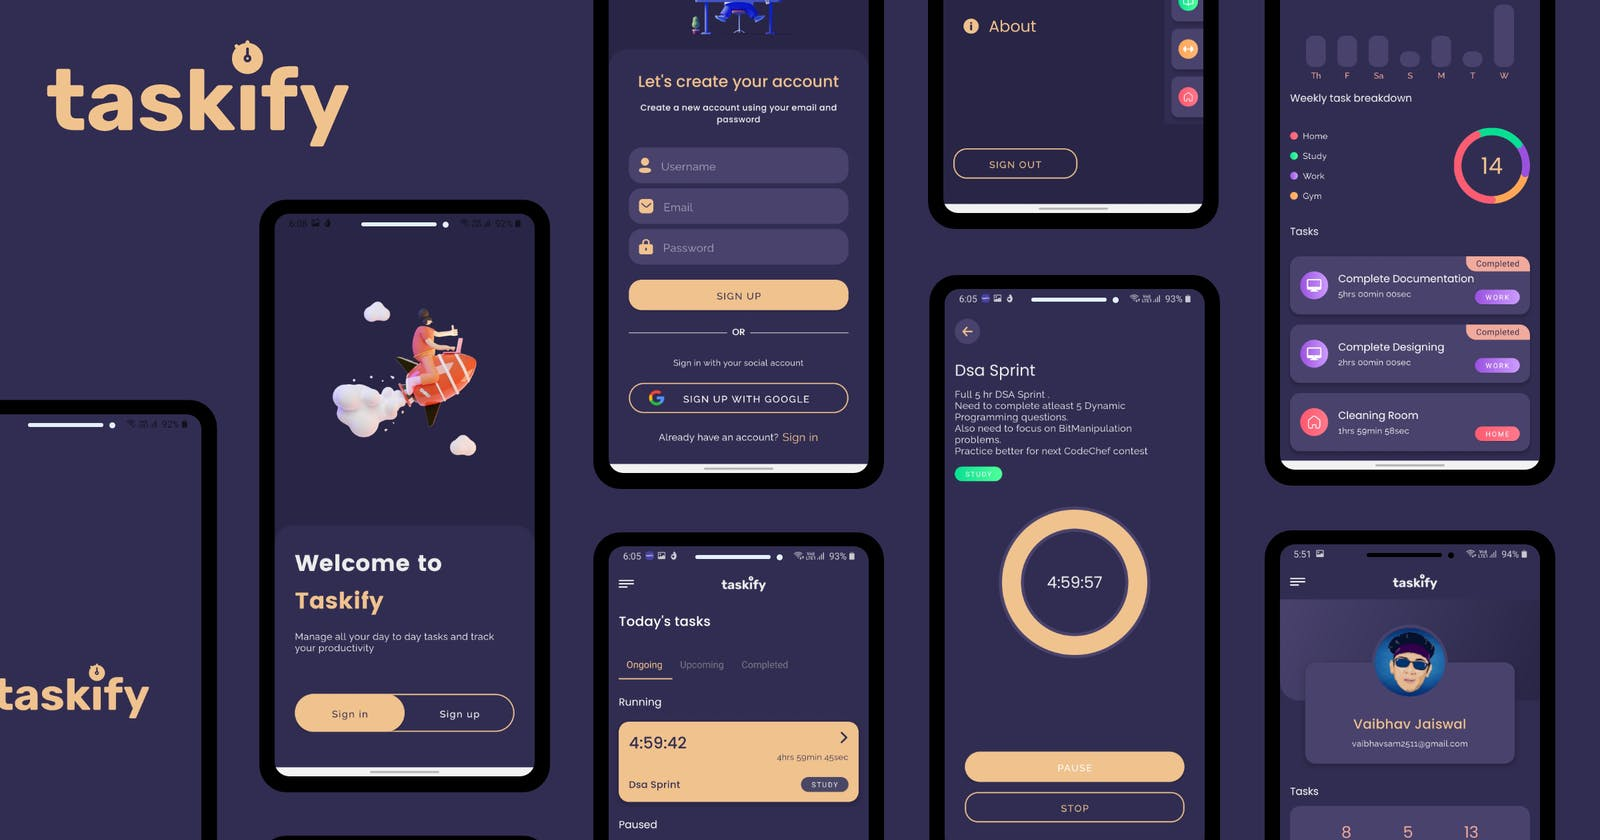 Taskify - An app to manage your daily tasks and boost your productivity - HarperDB Hackathon